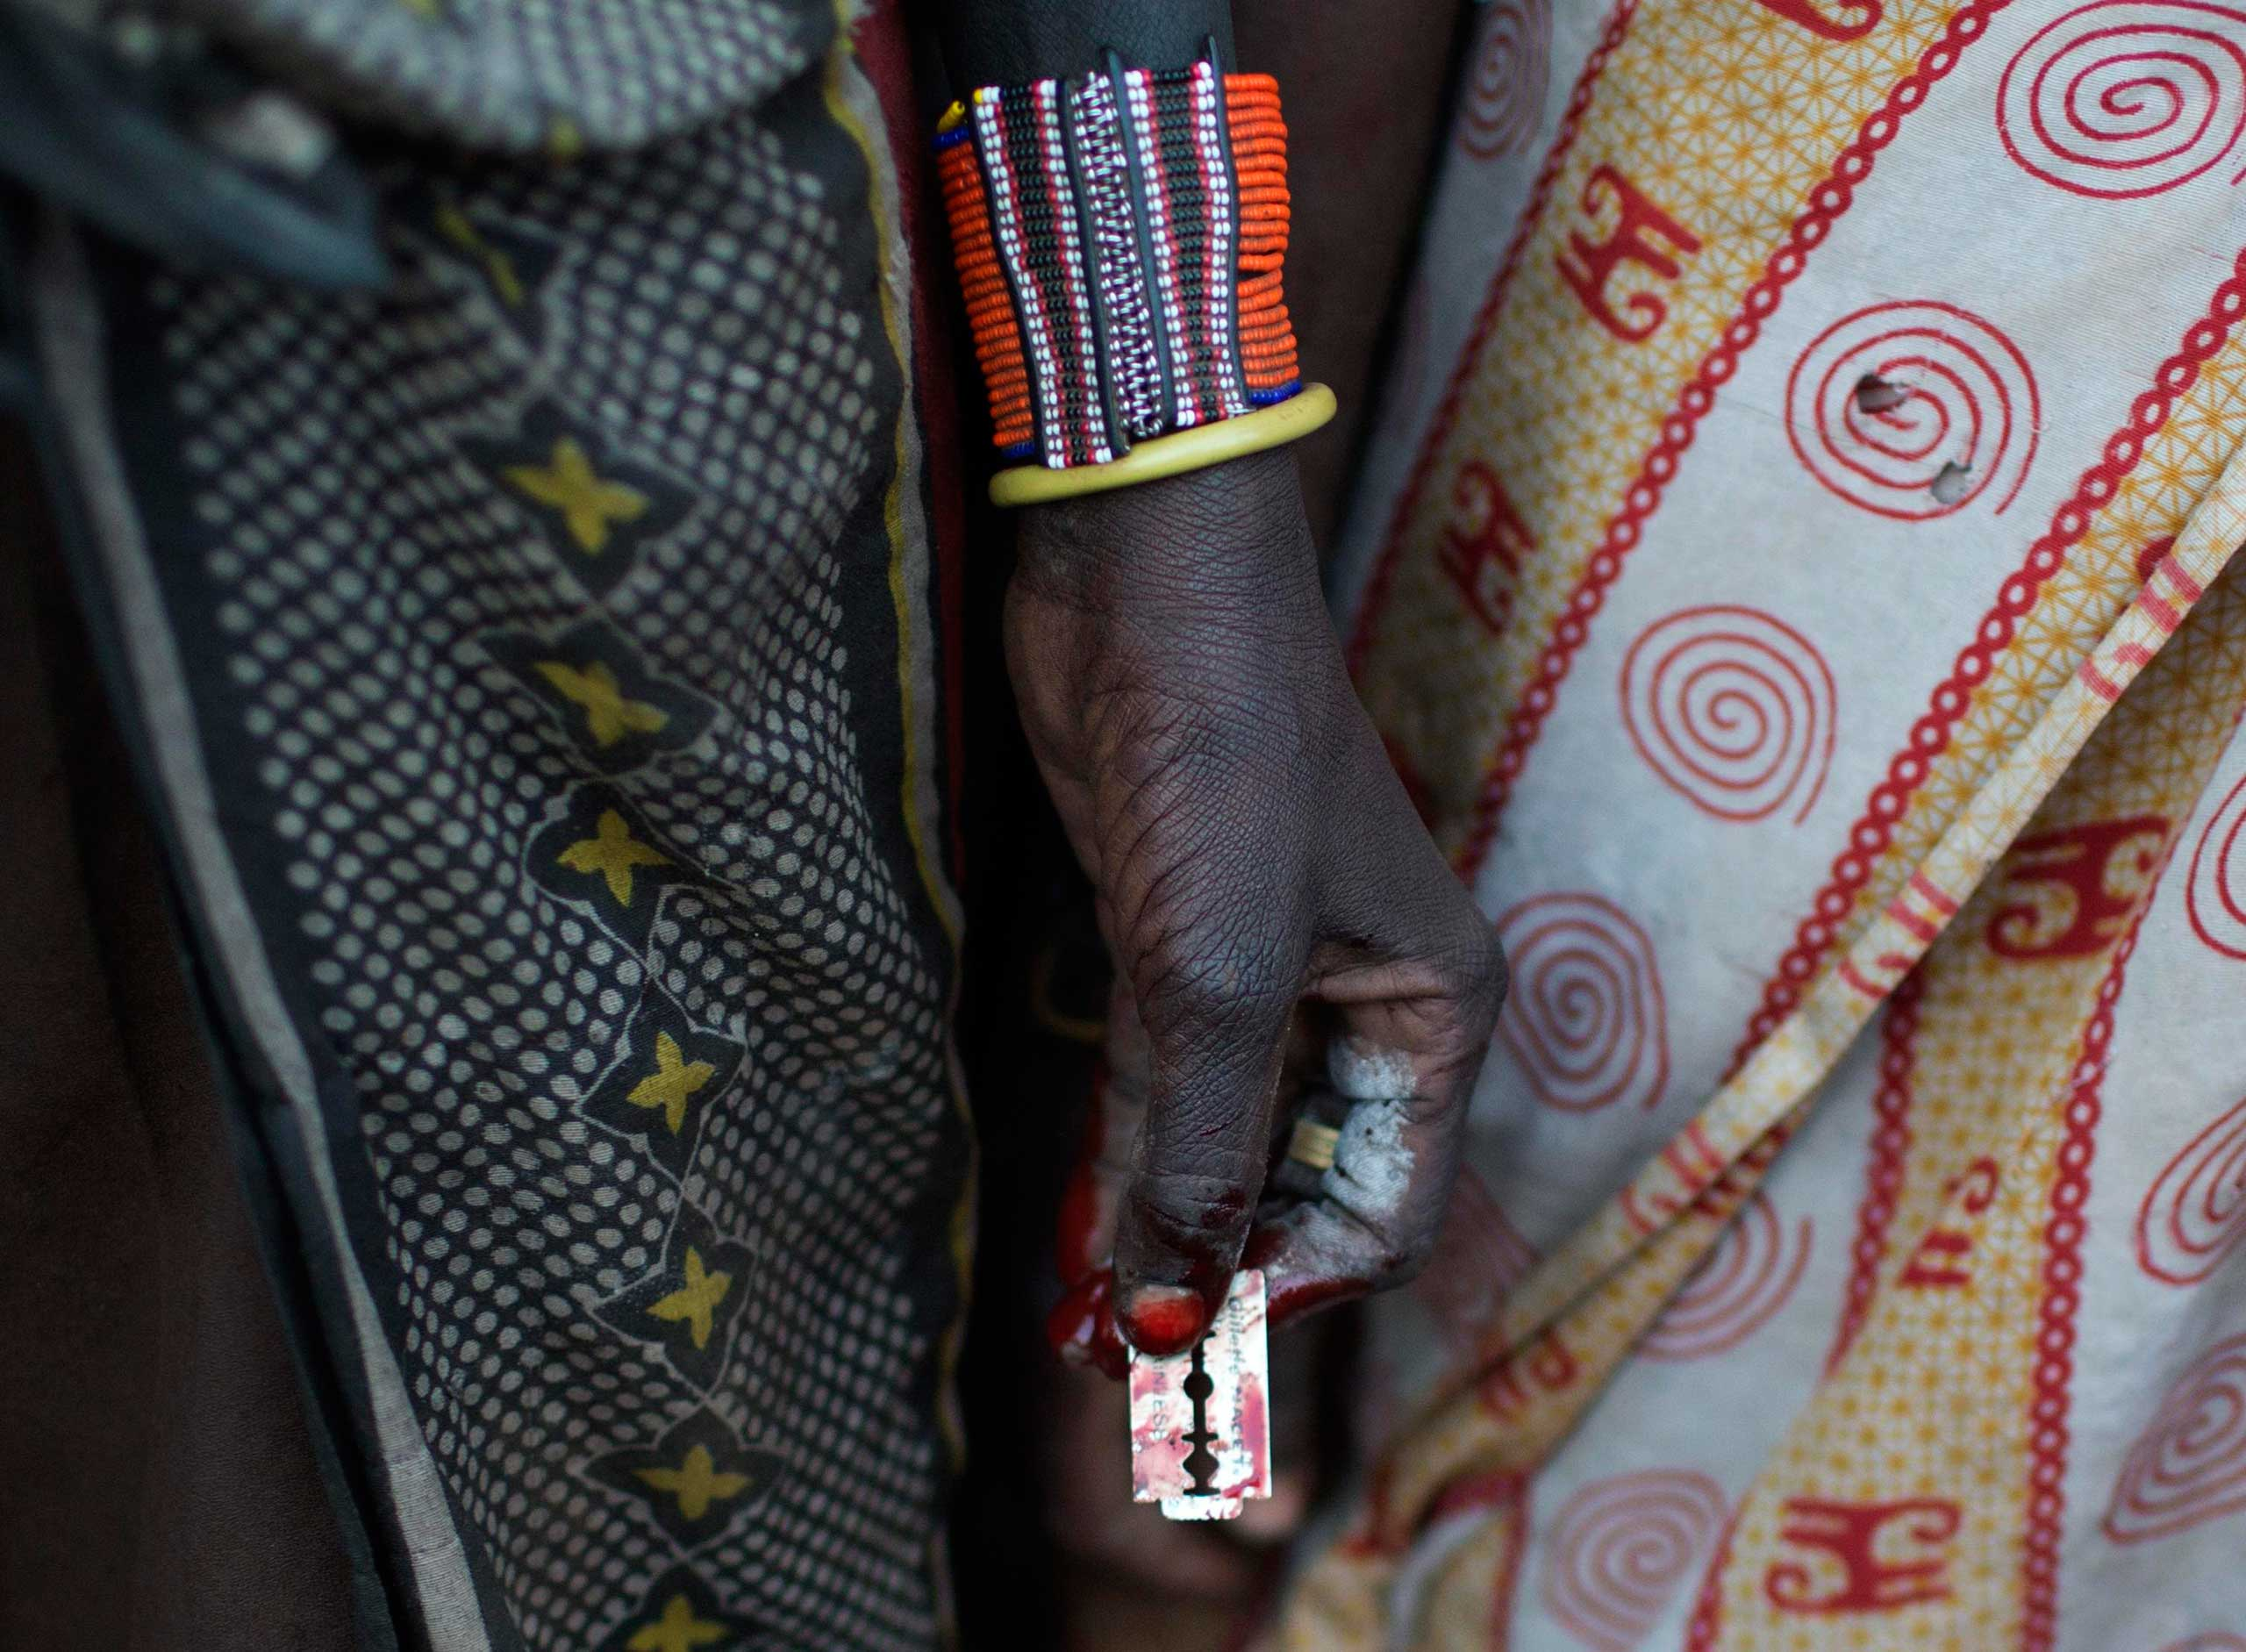 A Pokot woman holds a razor blade after performing a circumcision on four girls in a village about 80 kilometres from the town of Marigat in Baringo County, Kenya, Oct. 16, 2014.